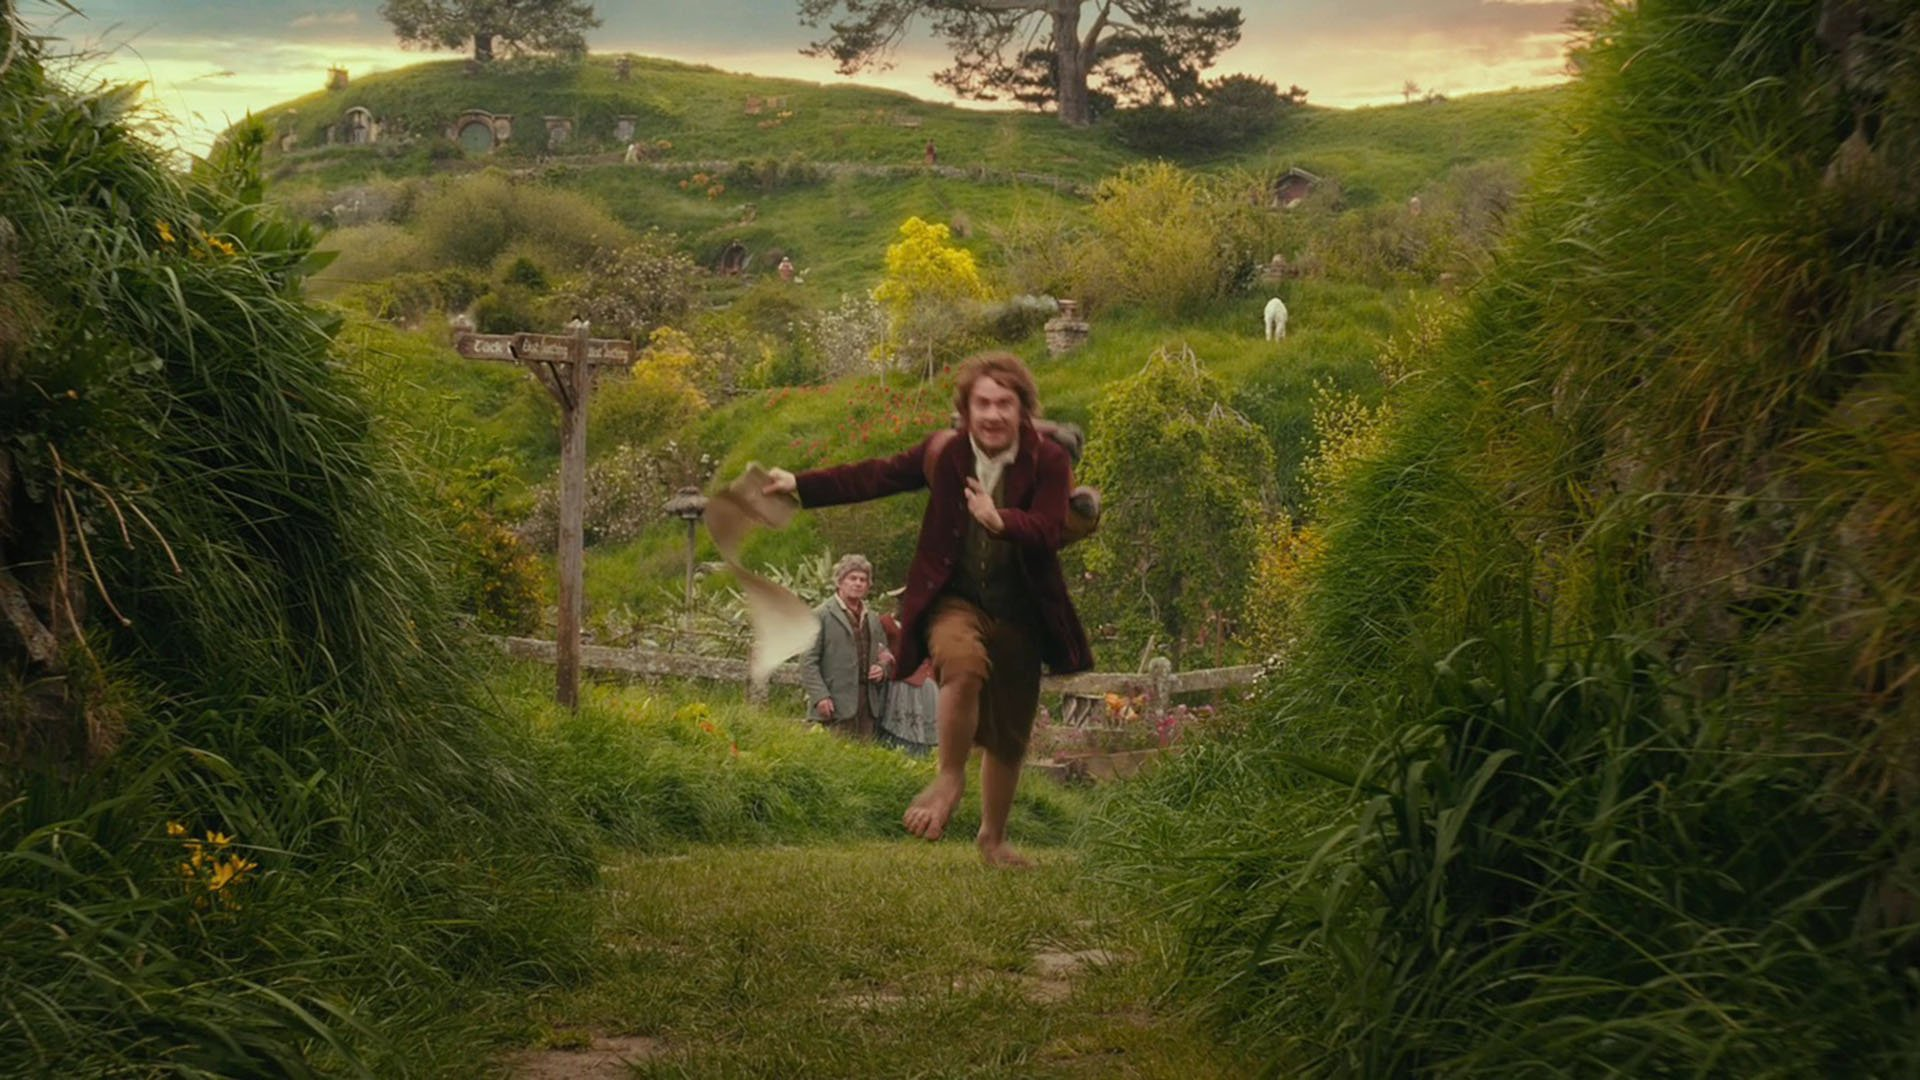 The Hobbit Wallpapers Desktop Wallpapers 1920x1080